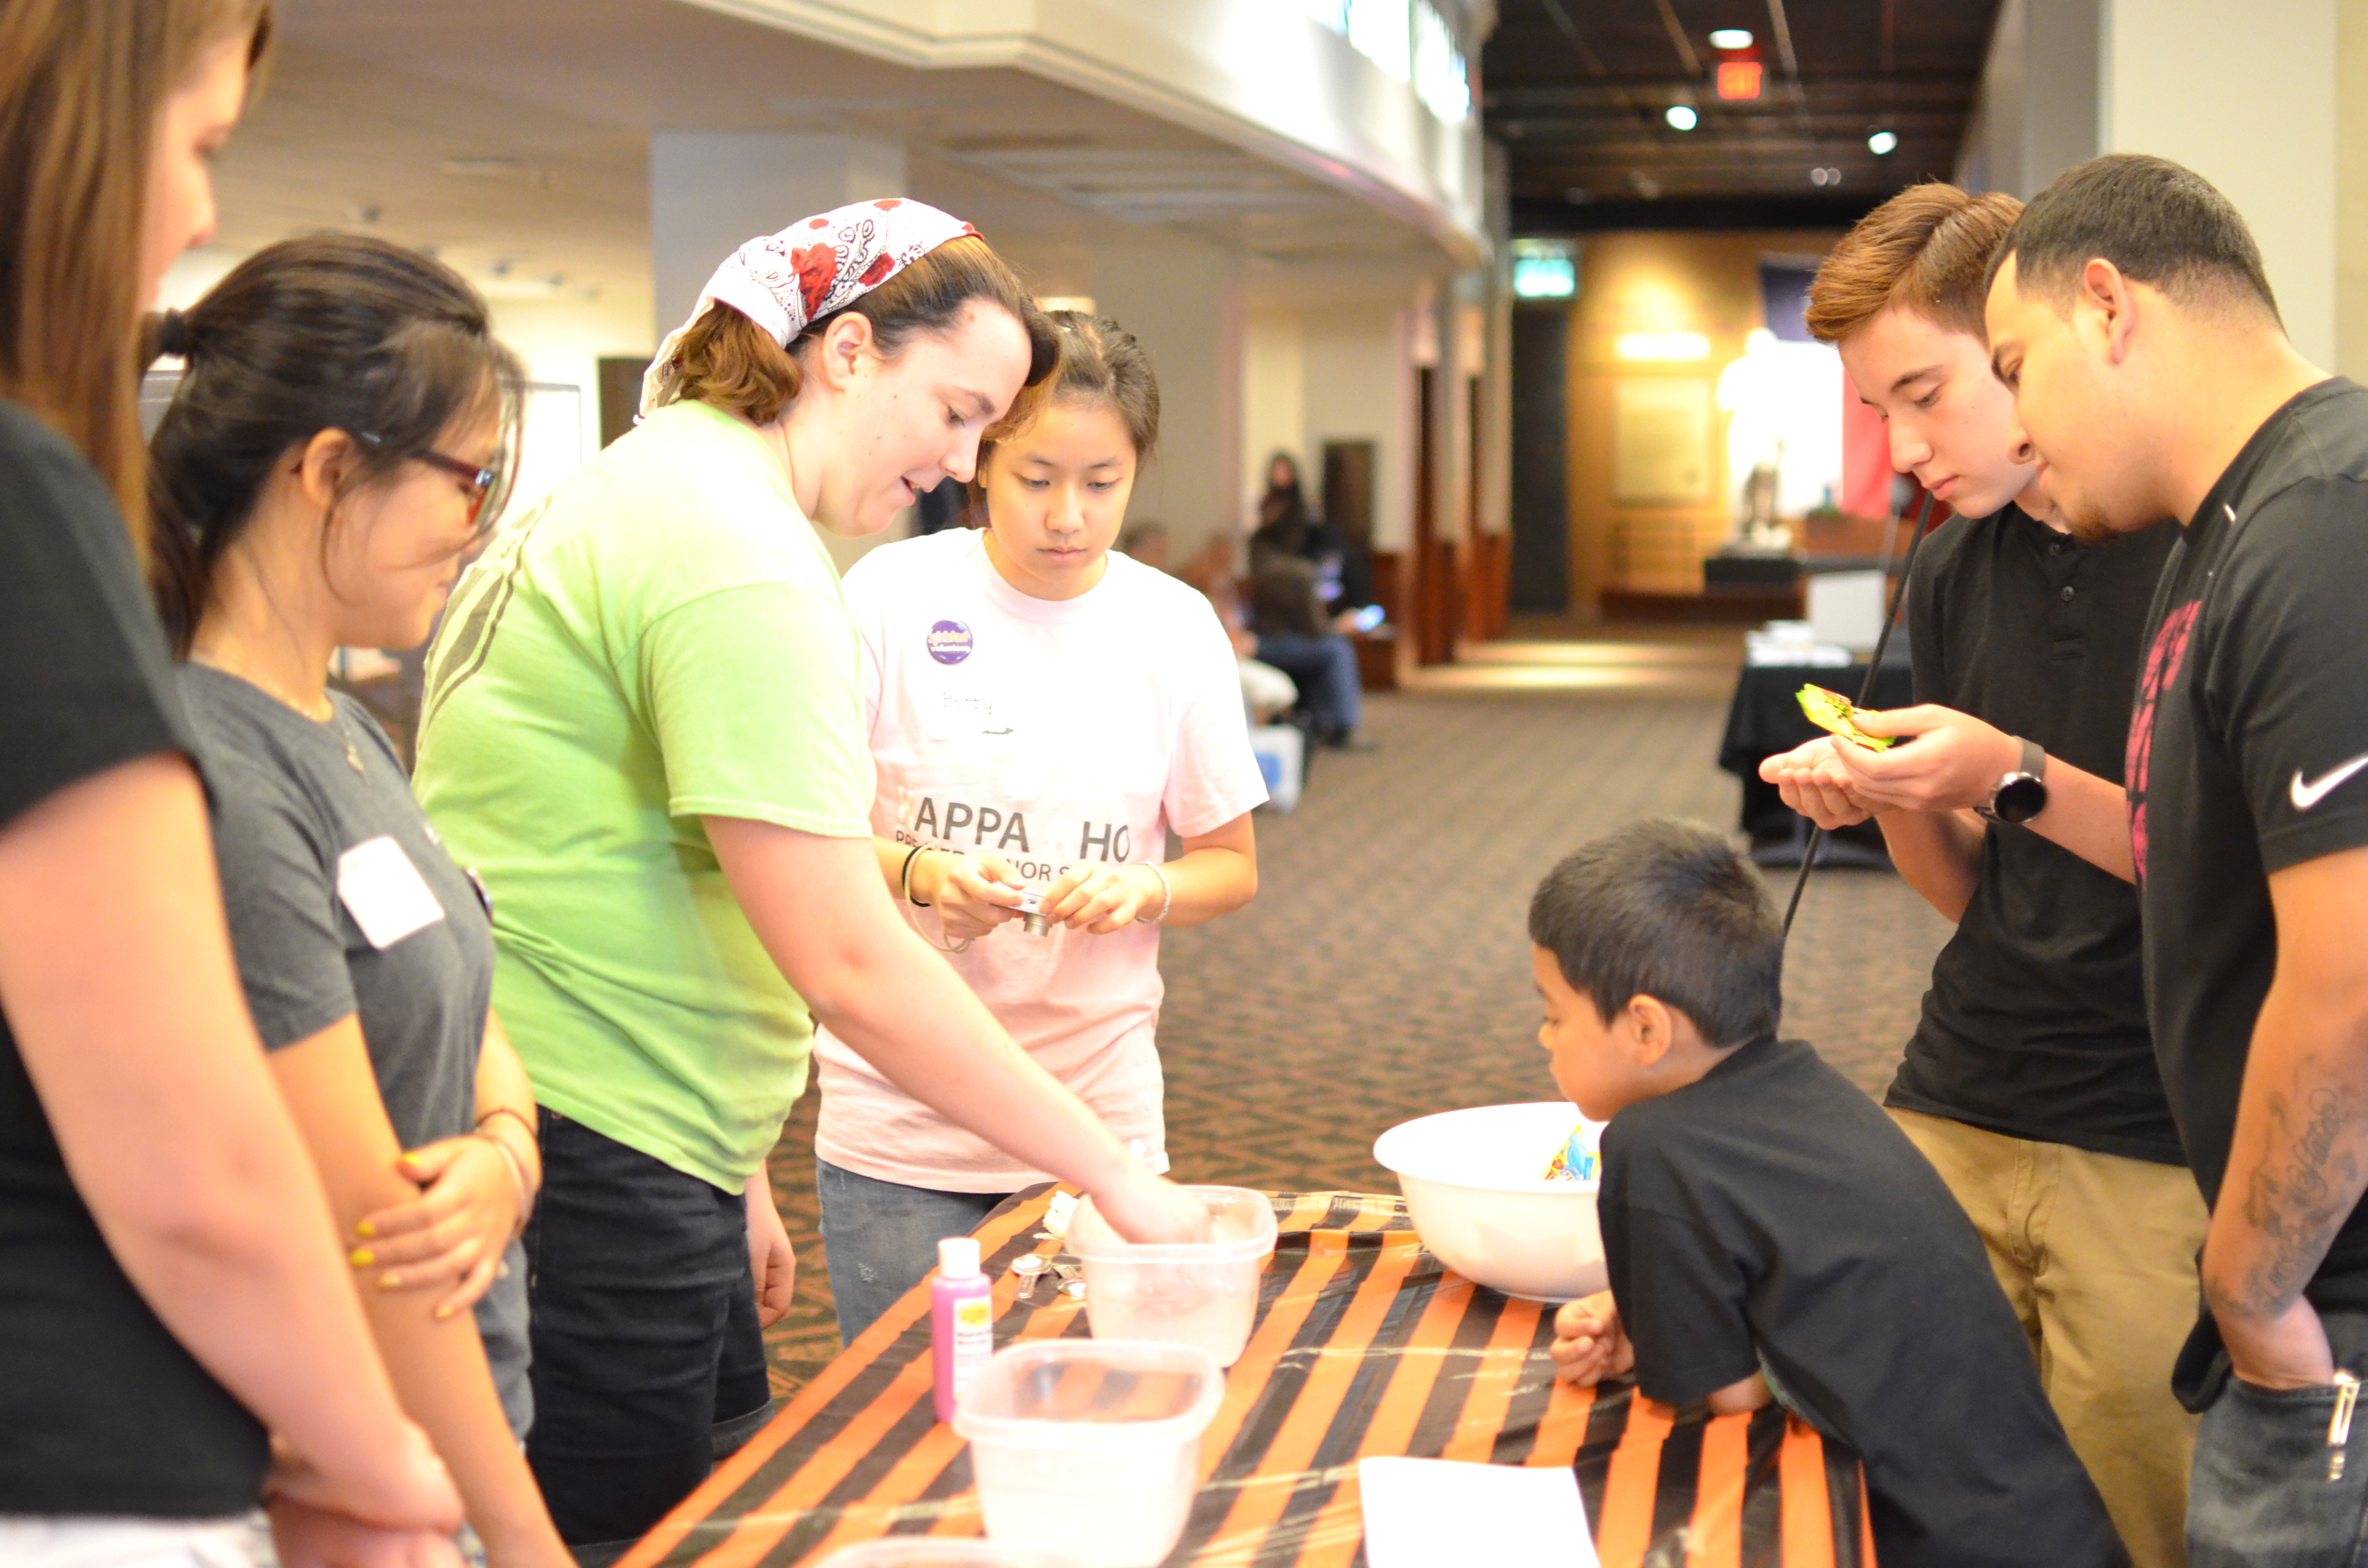 Treats, art and science activities are offered for children and families every year as part of the Bullock Museum's Spooktacular event held in conjunction with Girlstart.